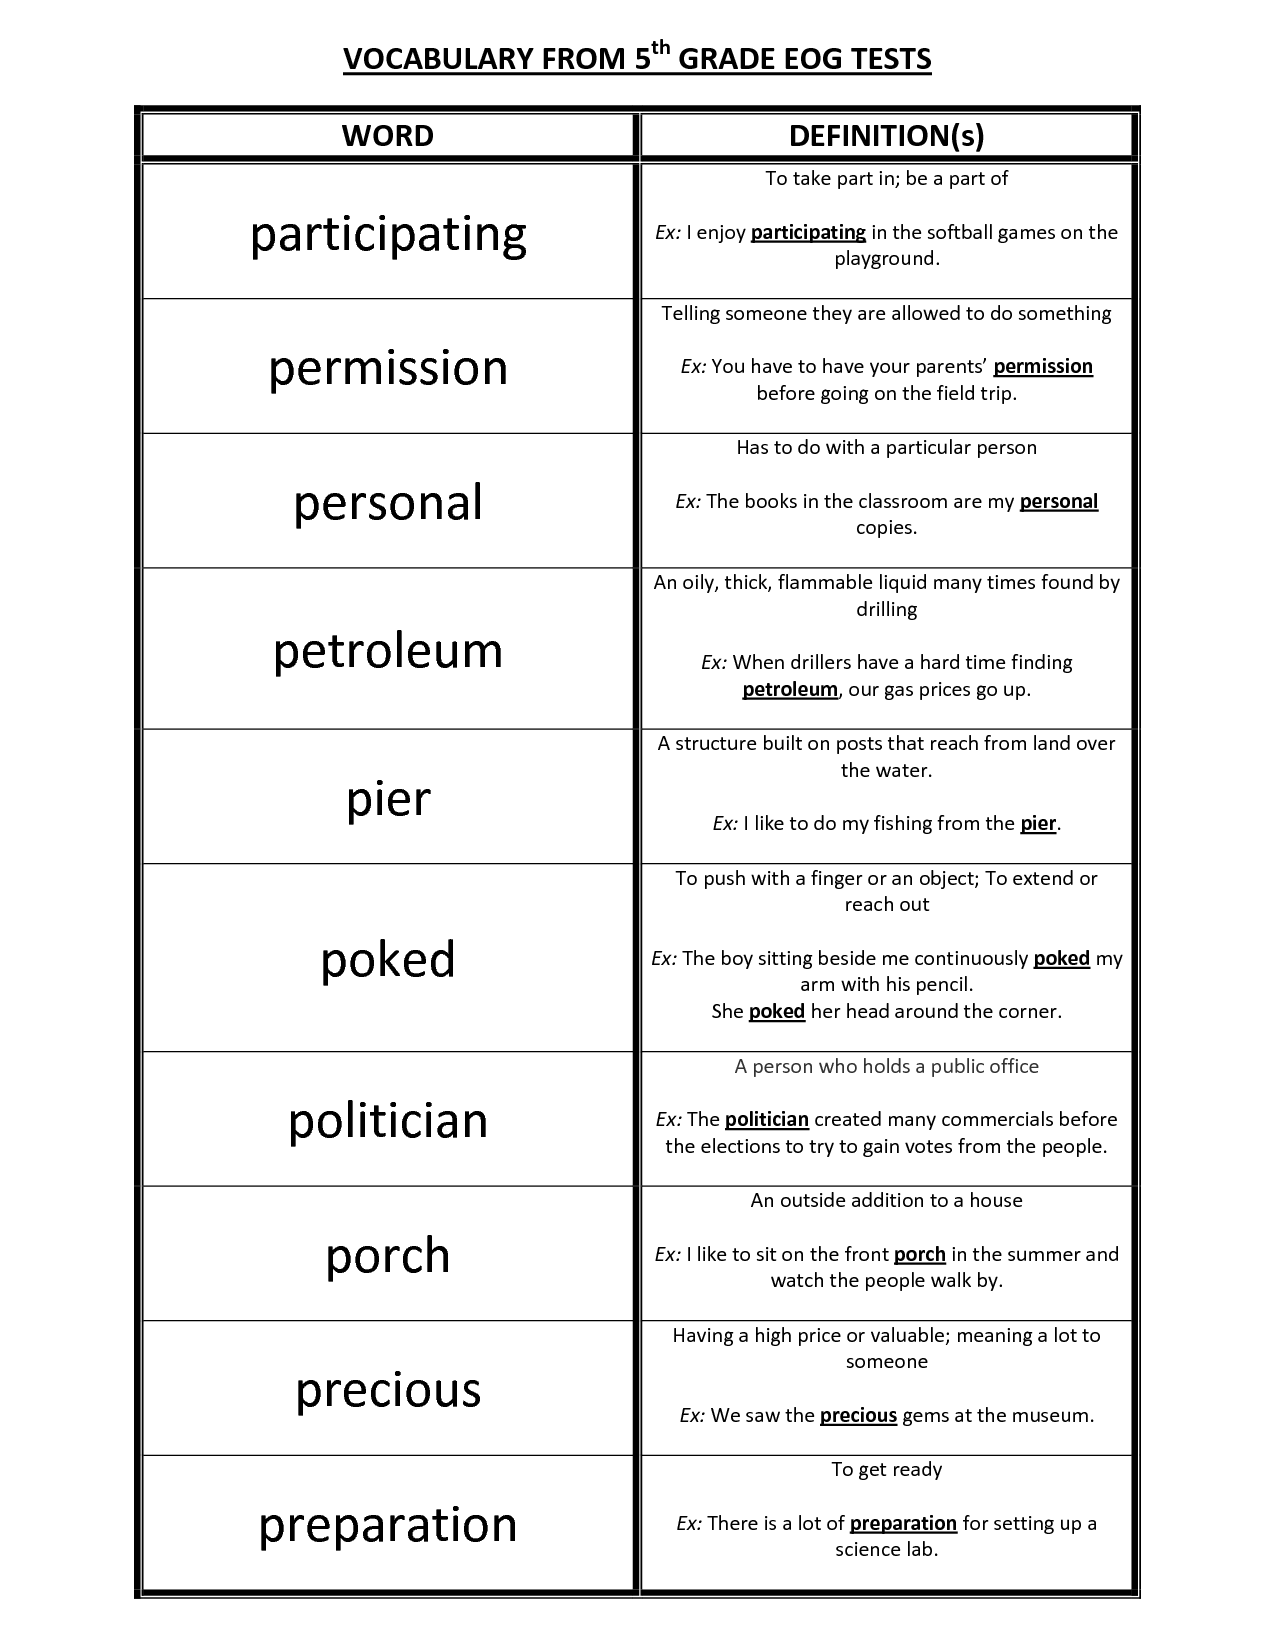 Vocabulary With Definition